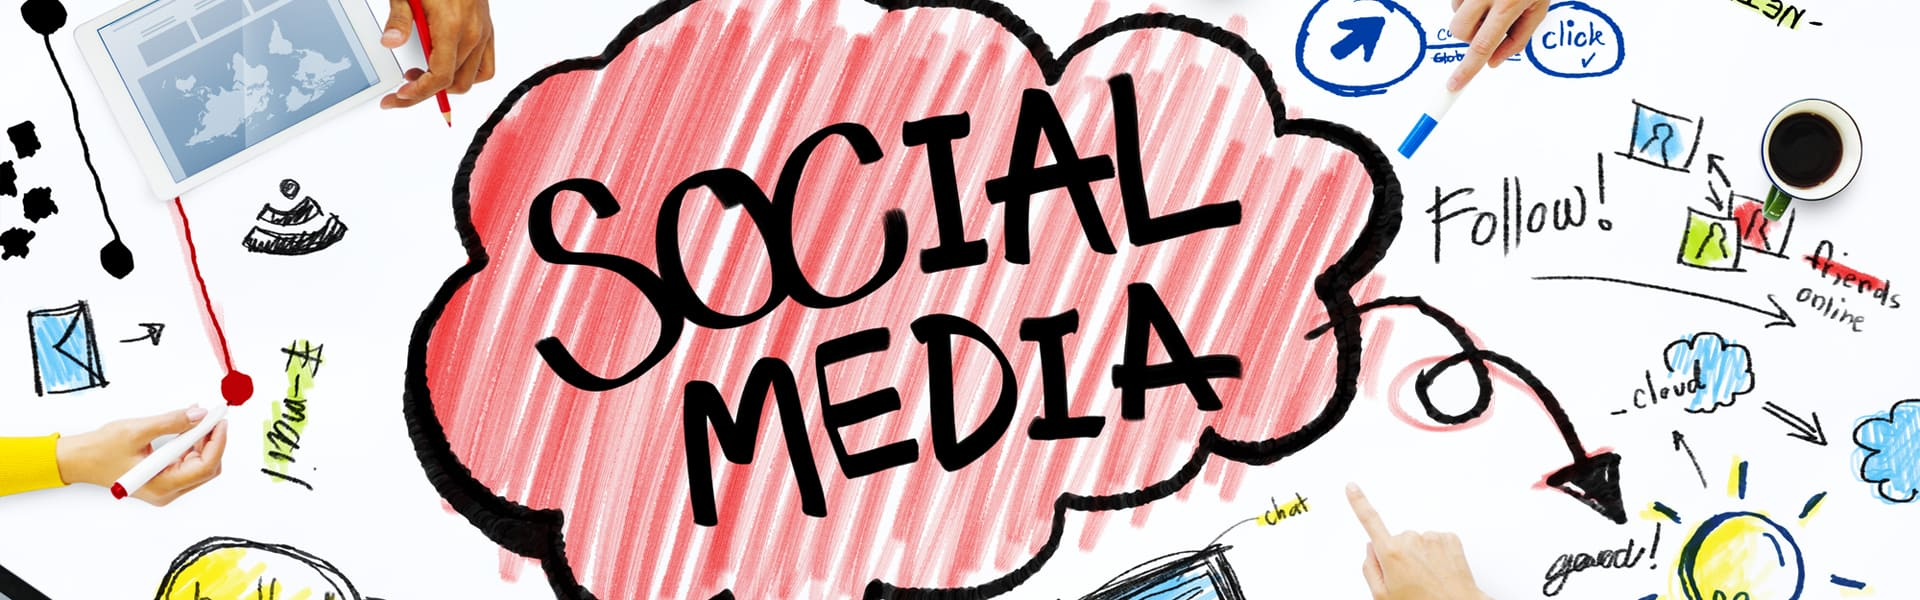 Using social media from blog content writing services